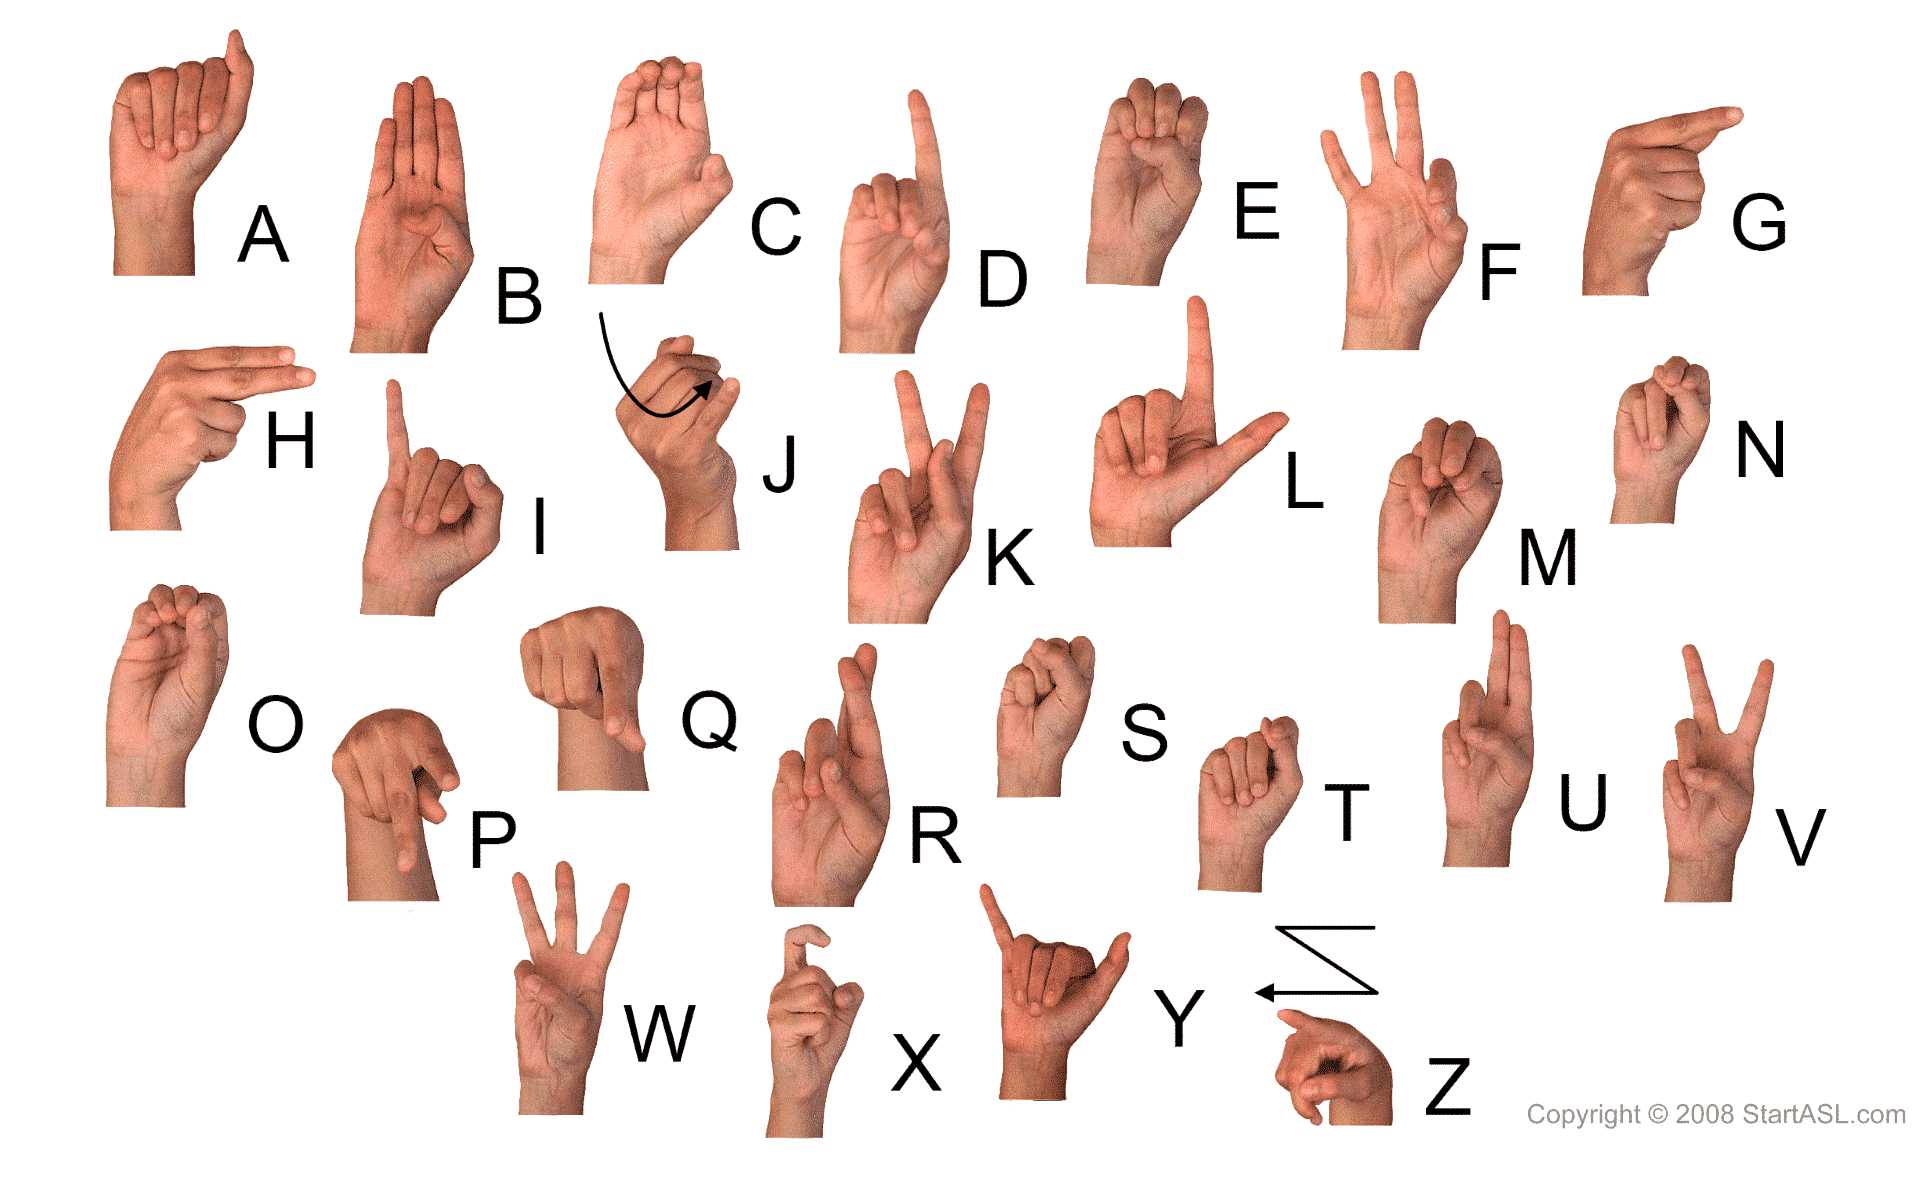 Sign Language Alphabet | 6 Free Downloads to Learn it Fast